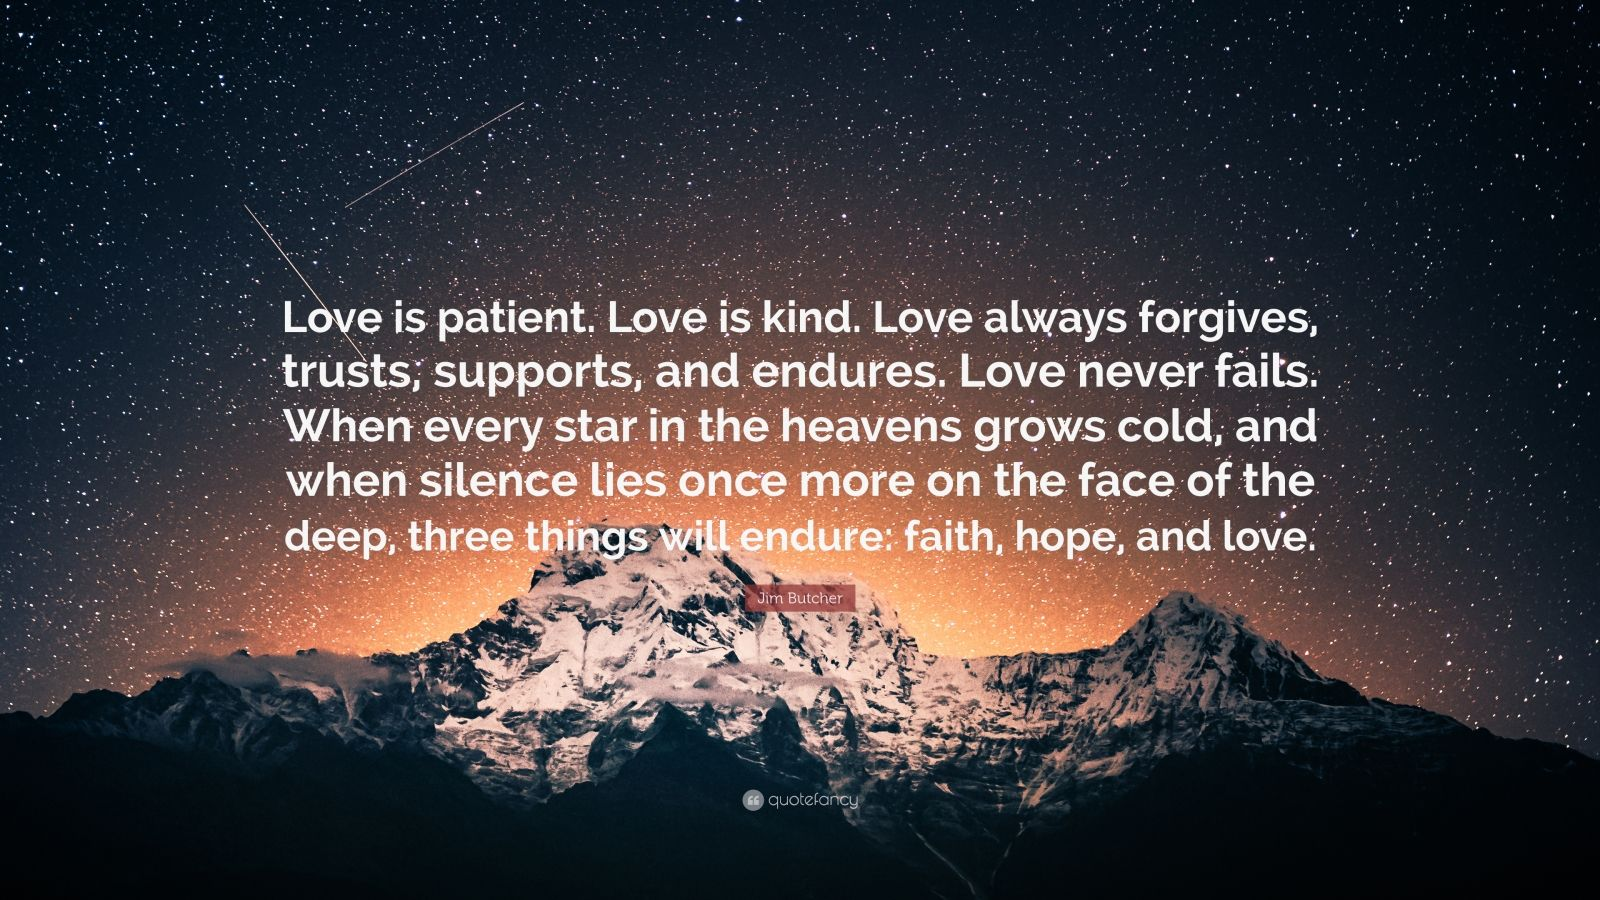 """Jim Butcher Quote: """"Love is patient. Love is kind. Love always forgives, trusts, supports, and endures. Love never fails. When every star in the heavens grows cold, and when silence lies once more on the face of the deep, three things will endure: faith, hope, and love."""""""